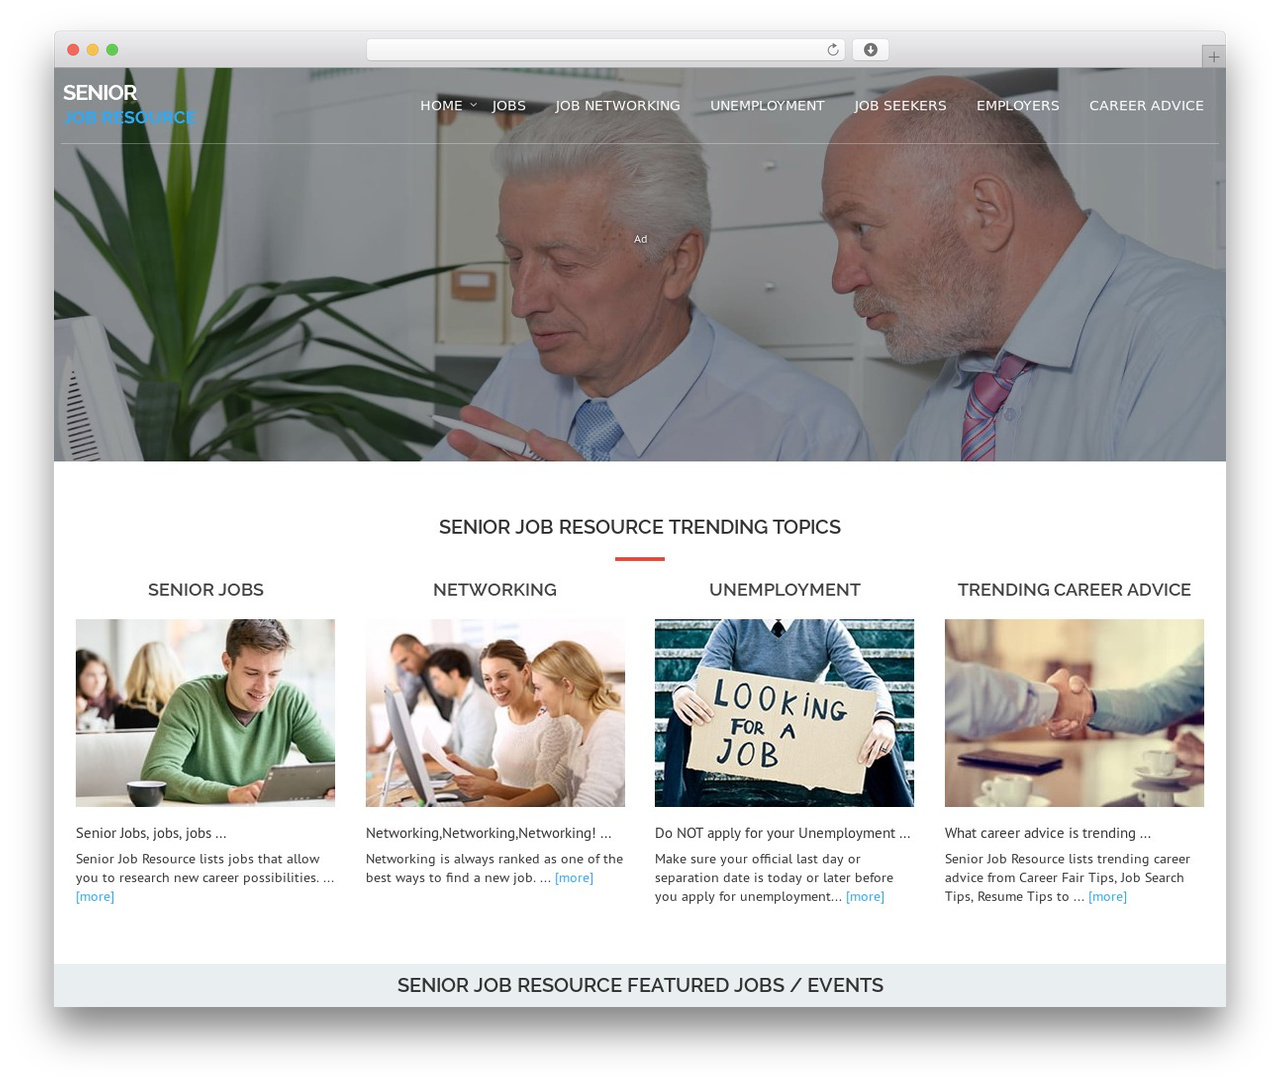 WordPress theme Avion - seniorjobresource.com